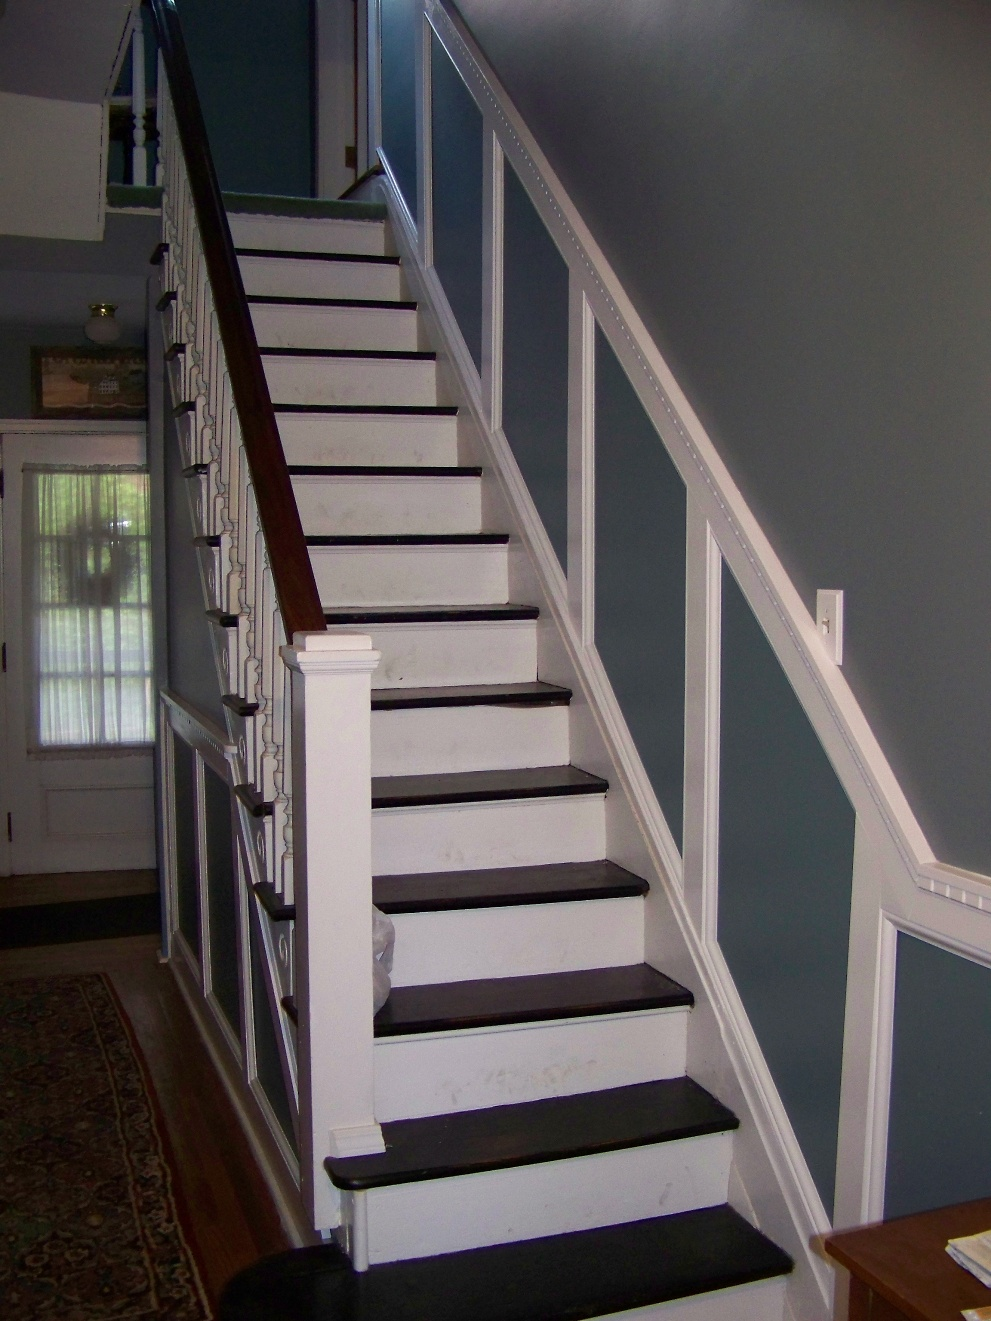 How To Install Wainscoting Stairway Wainscoting Redo